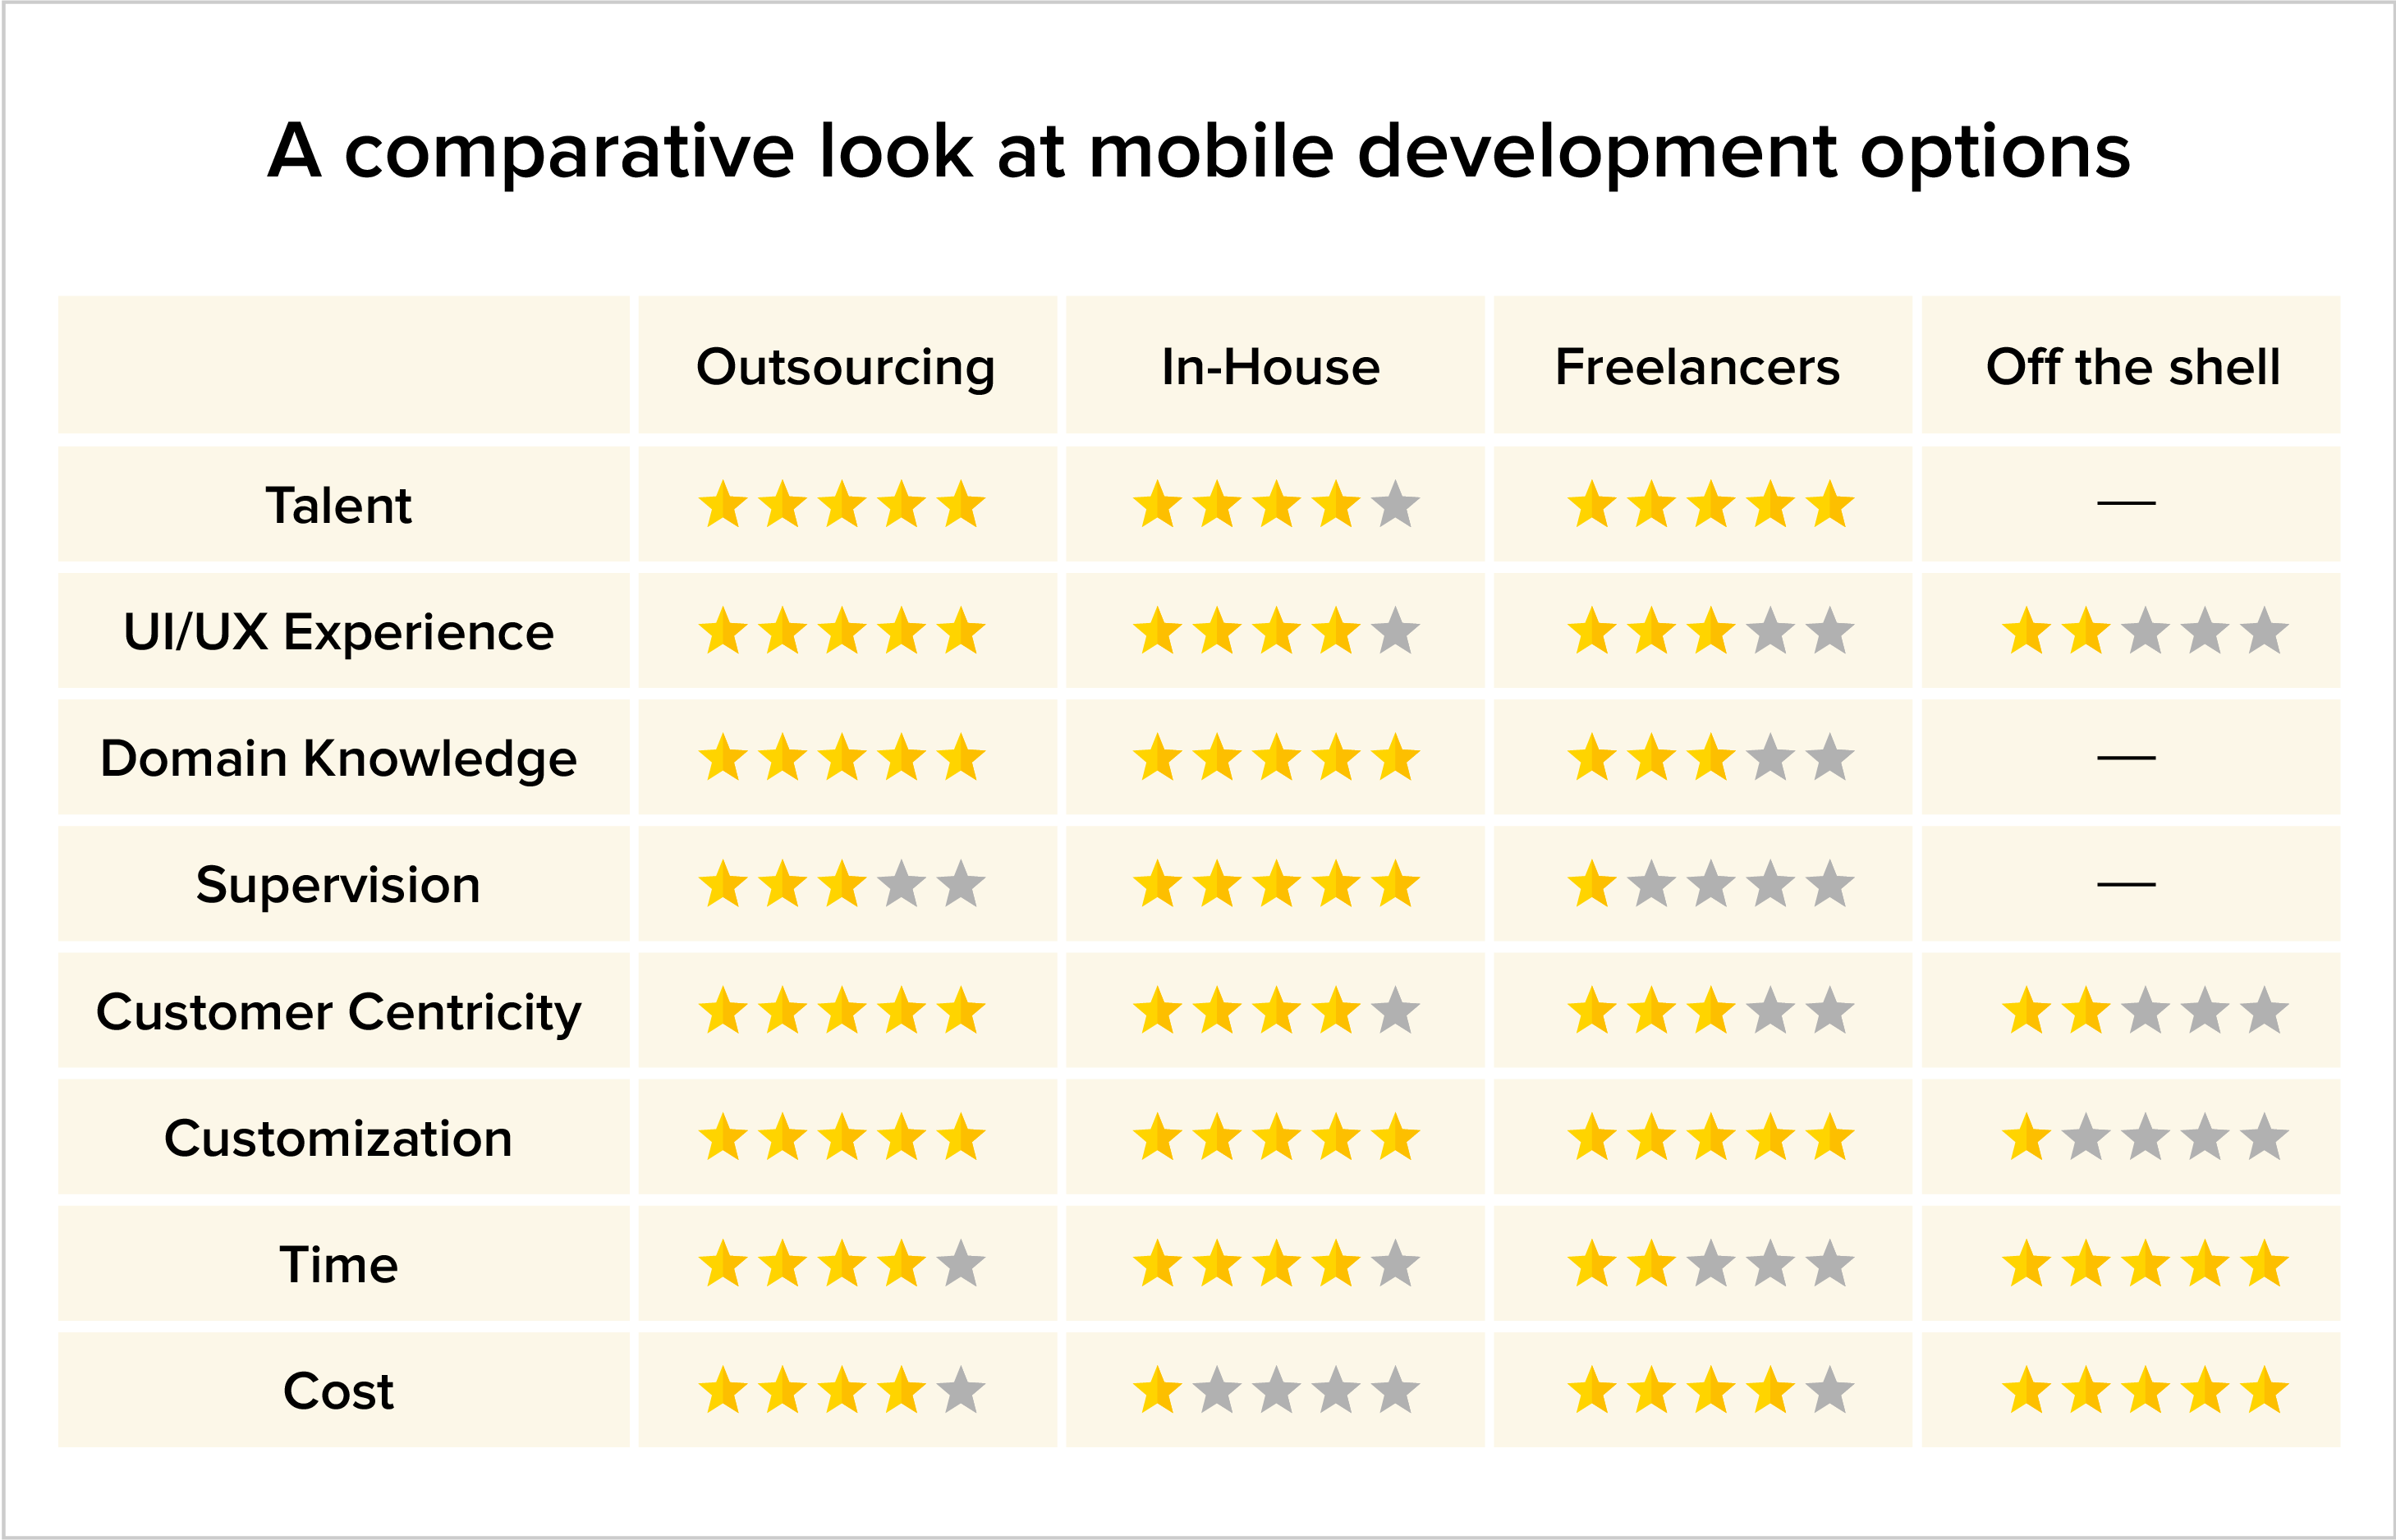 A comparative look at mobile development options